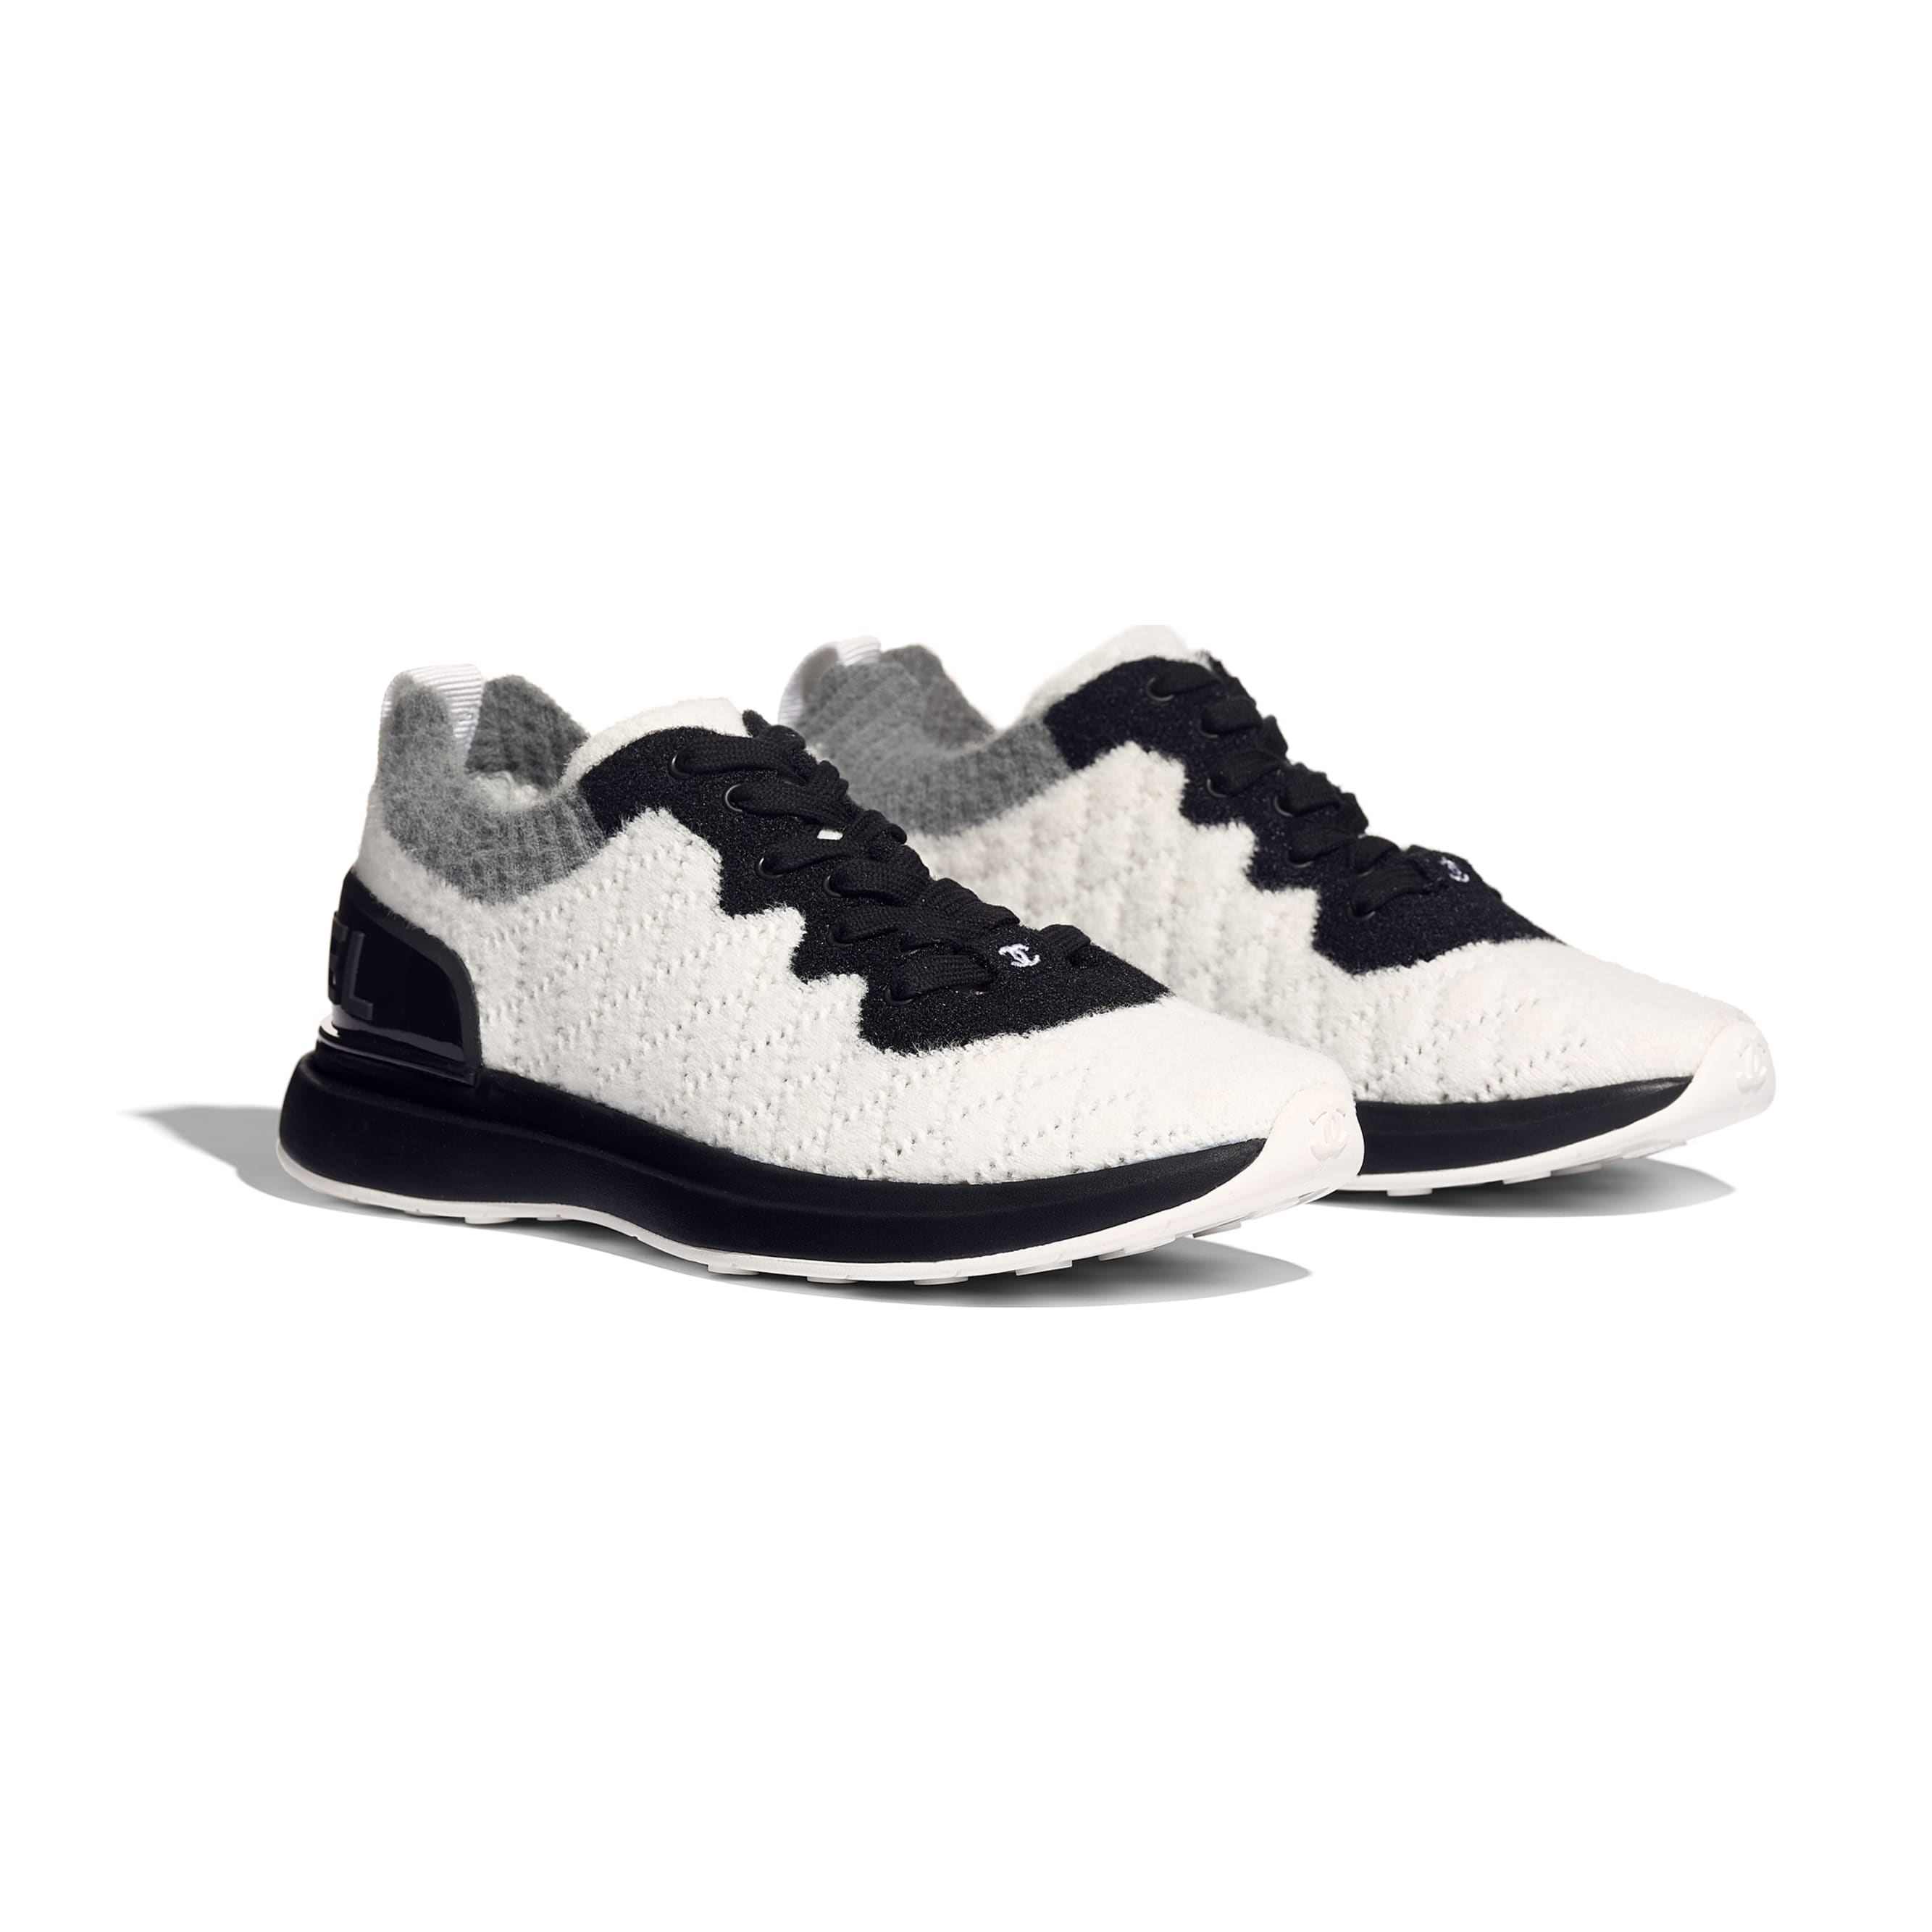 Trainers - White, Black & Gray - Mixed Fibres - Alternative view - see standard sized version